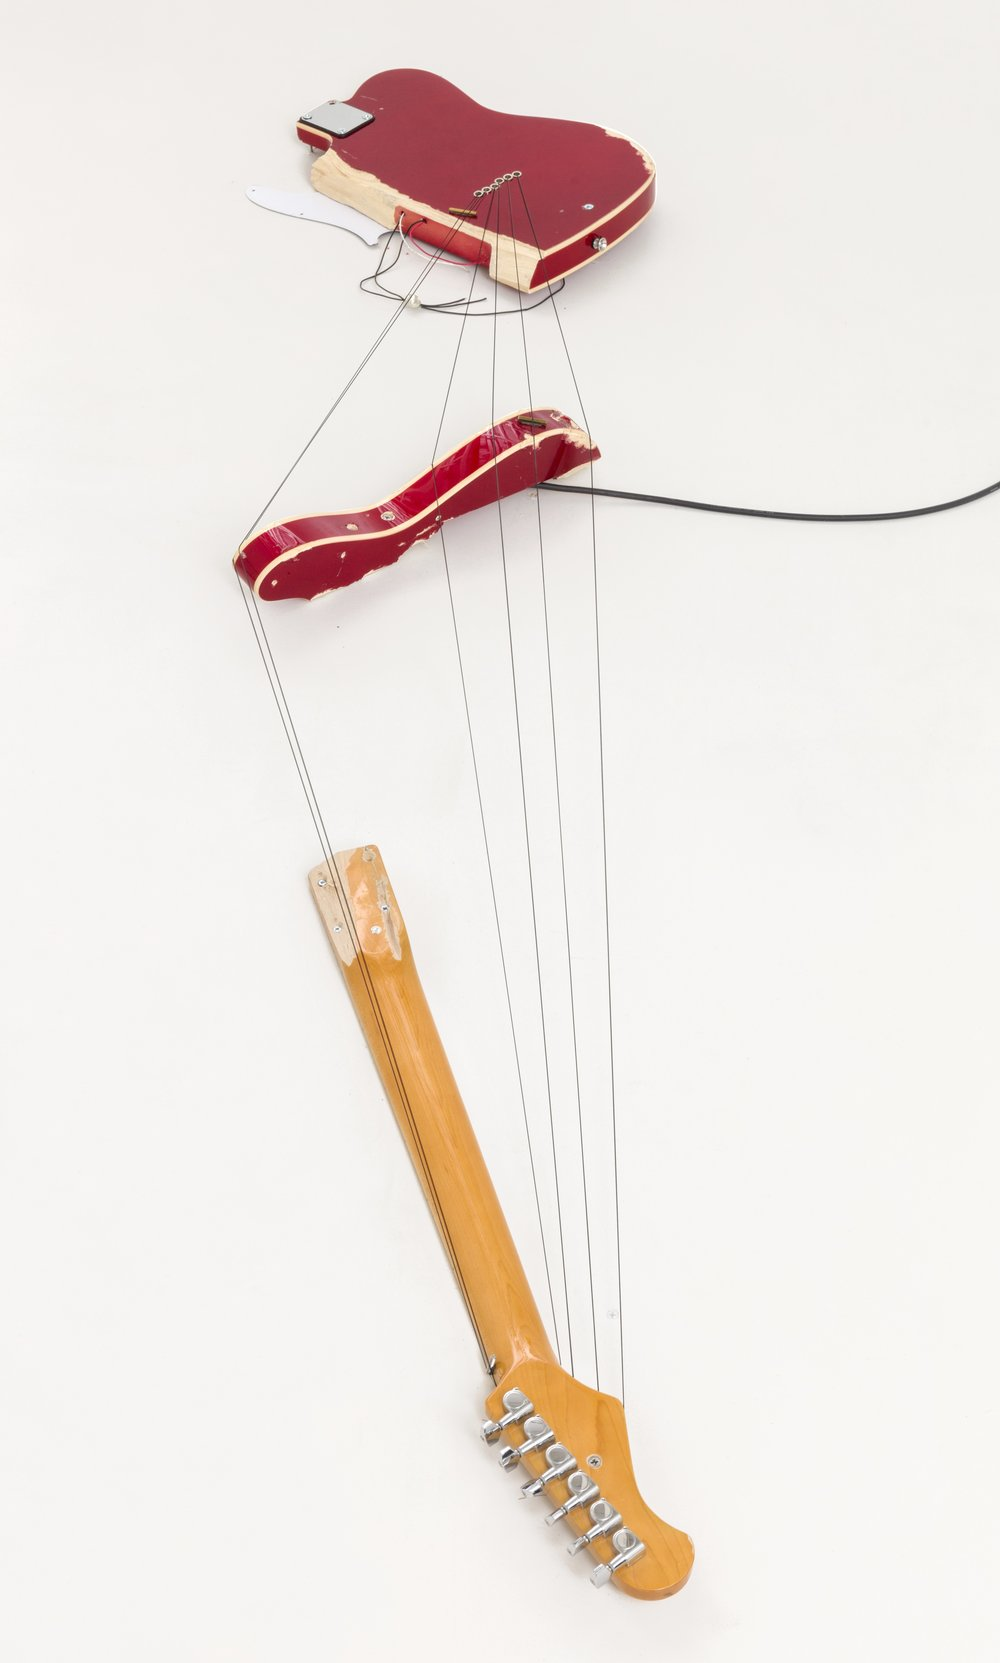 """Melody of Certain Damage #1, 2018, broken electric guitar, strings, microphone, screws and amplifier, 73""""x17""""x4"""". Image by Chris Stach"""